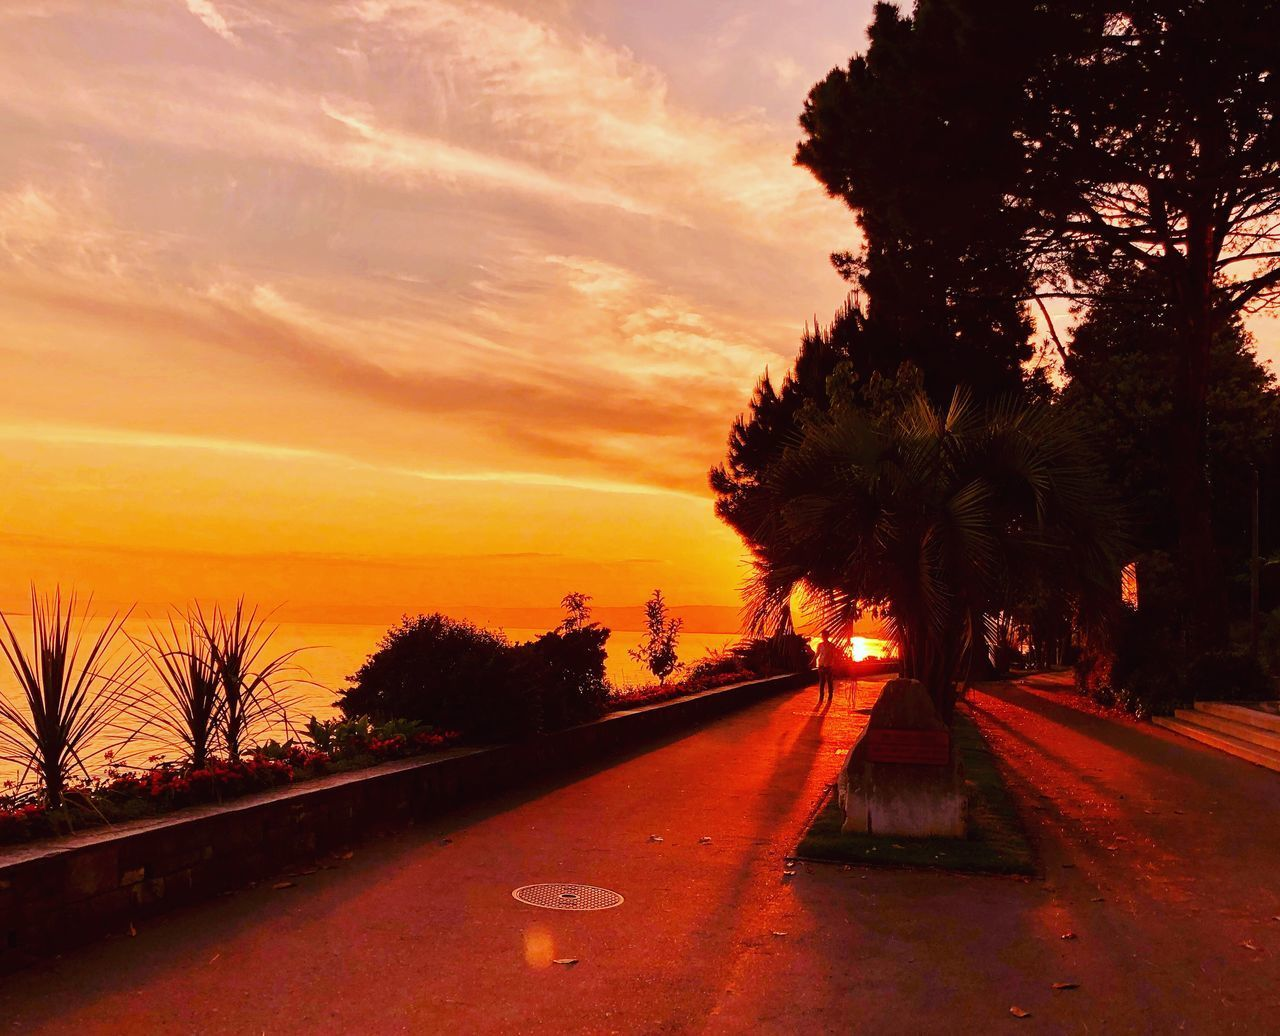 sunset, tree, sky, plant, transportation, orange color, nature, no people, cloud - sky, road, beauty in nature, the way forward, silhouette, car, direction, scenics - nature, outdoors, tranquility, tranquil scene, street